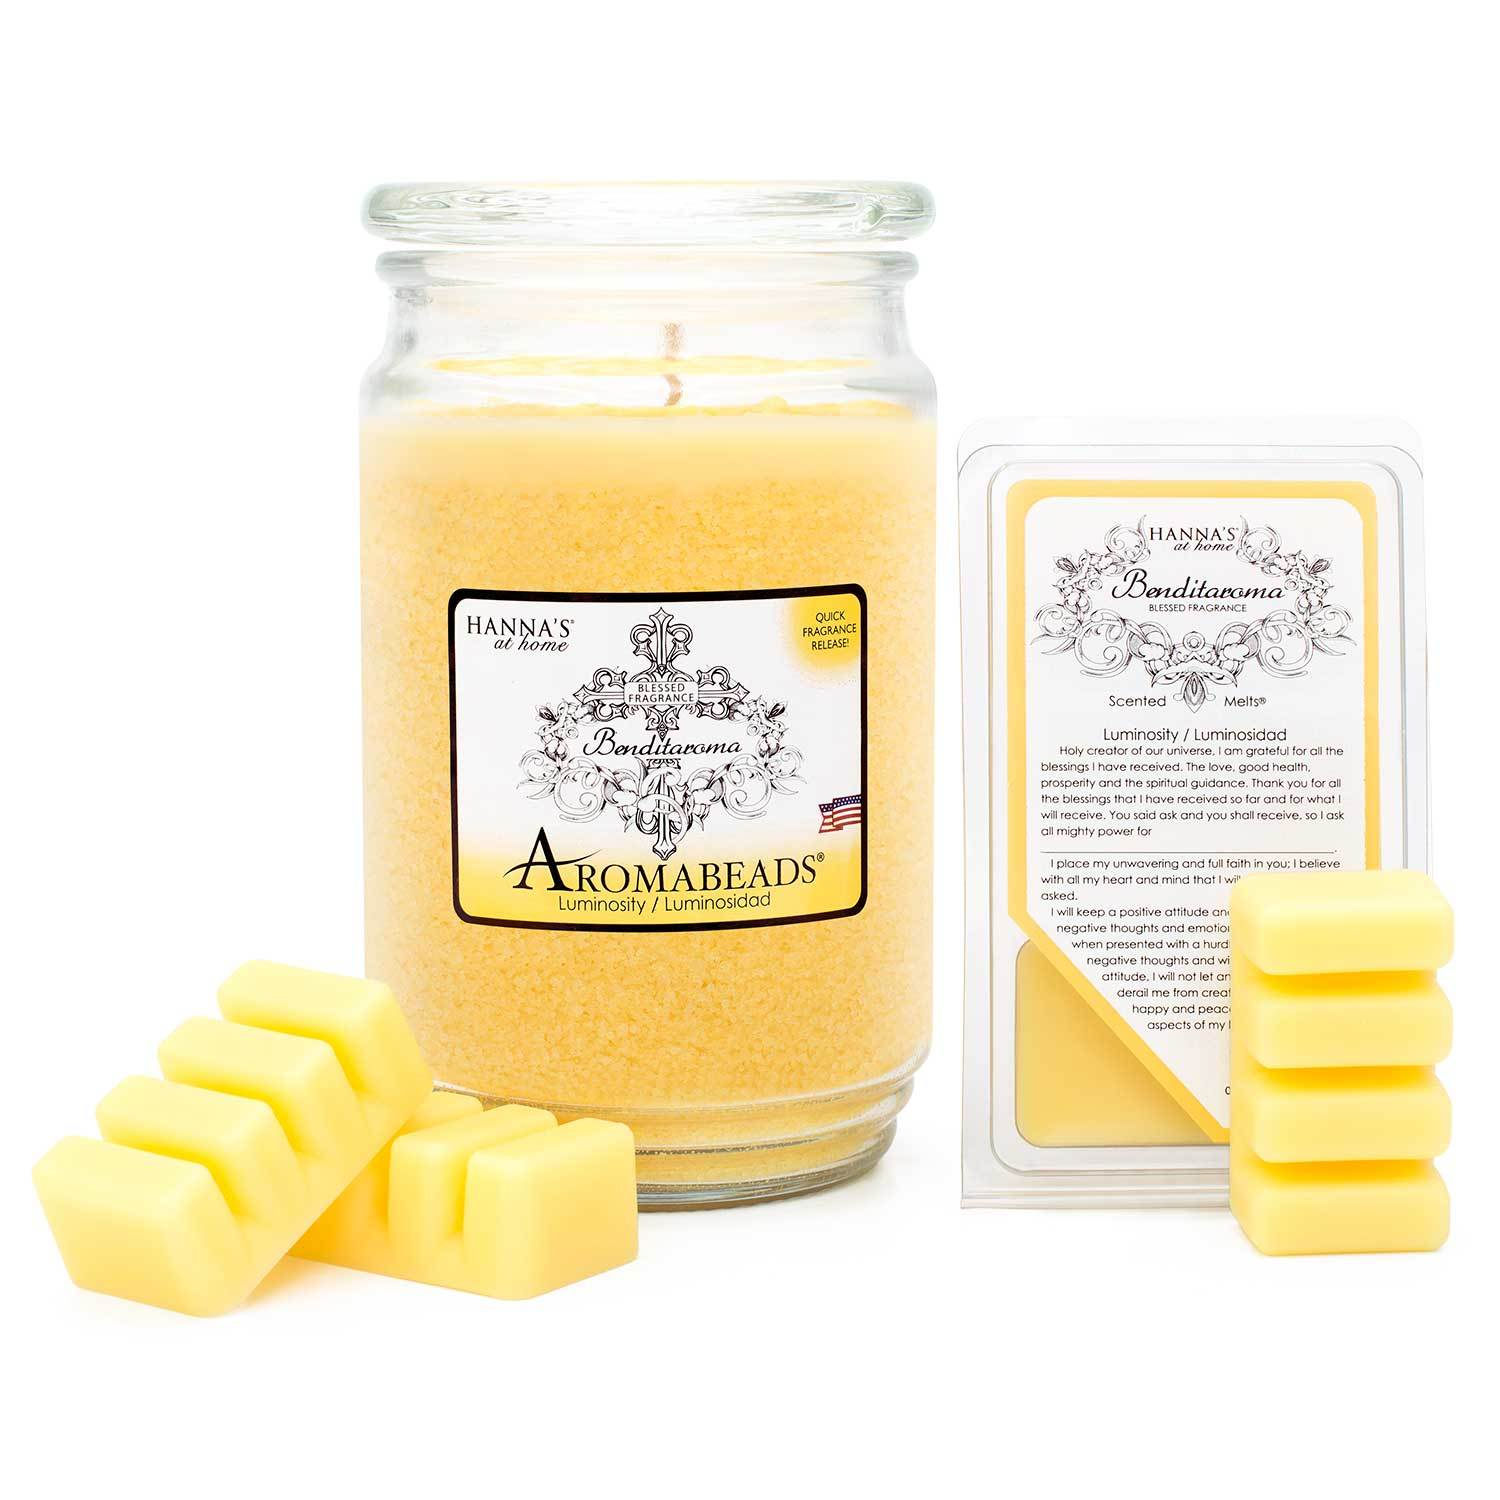 Luminosity Luminosidad Scented Wax Melts Melts Candlemart.com $ 1.99